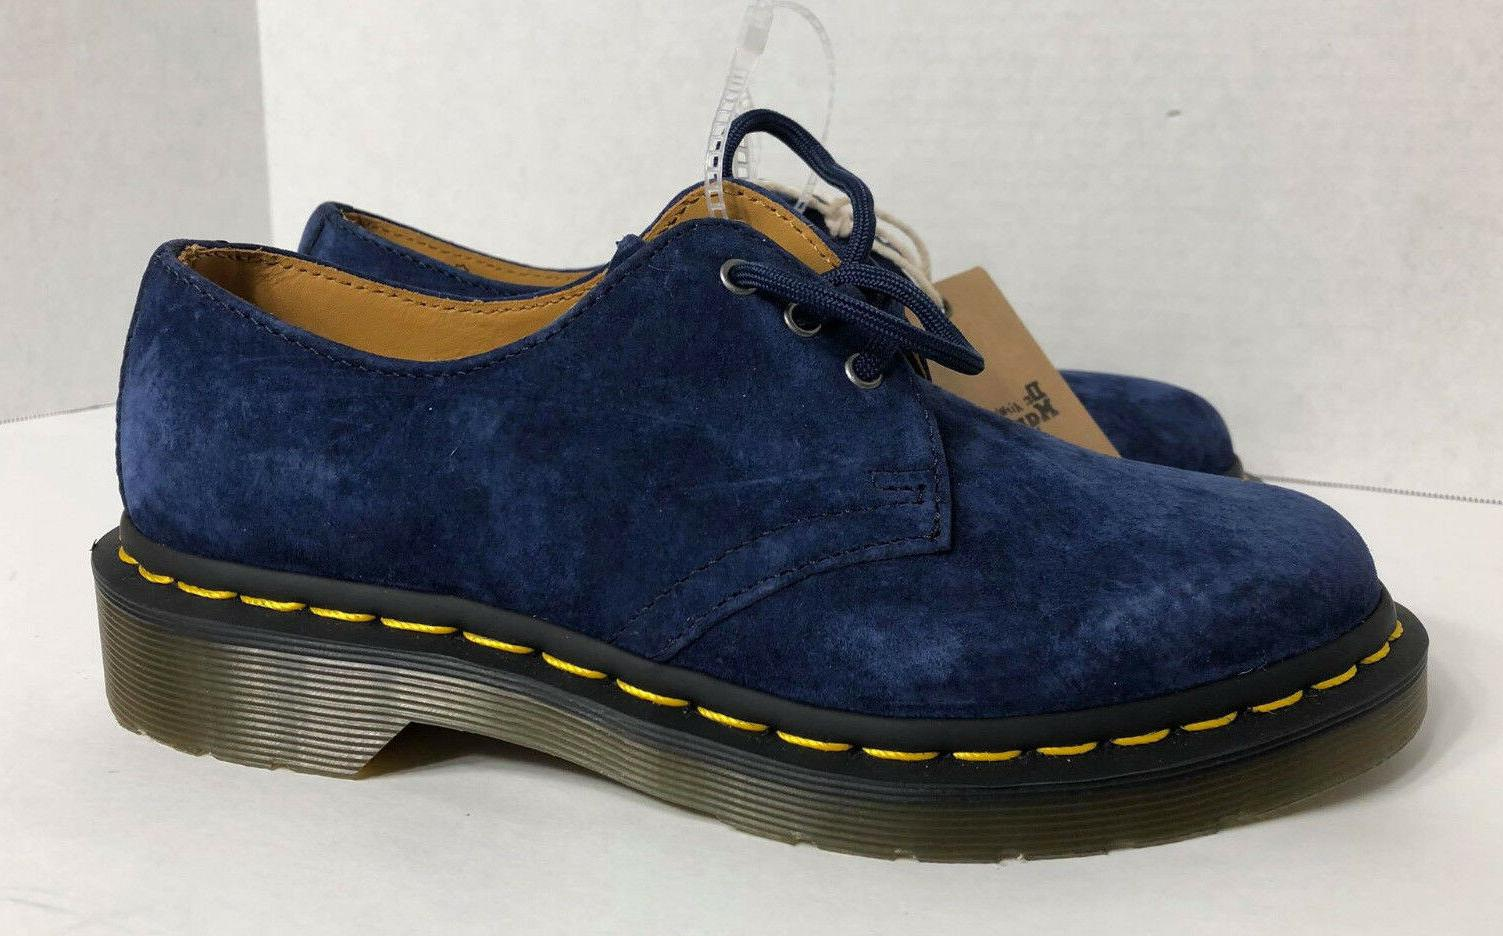 NEW Womens Size 5 4 Oxford Shoes MSRP